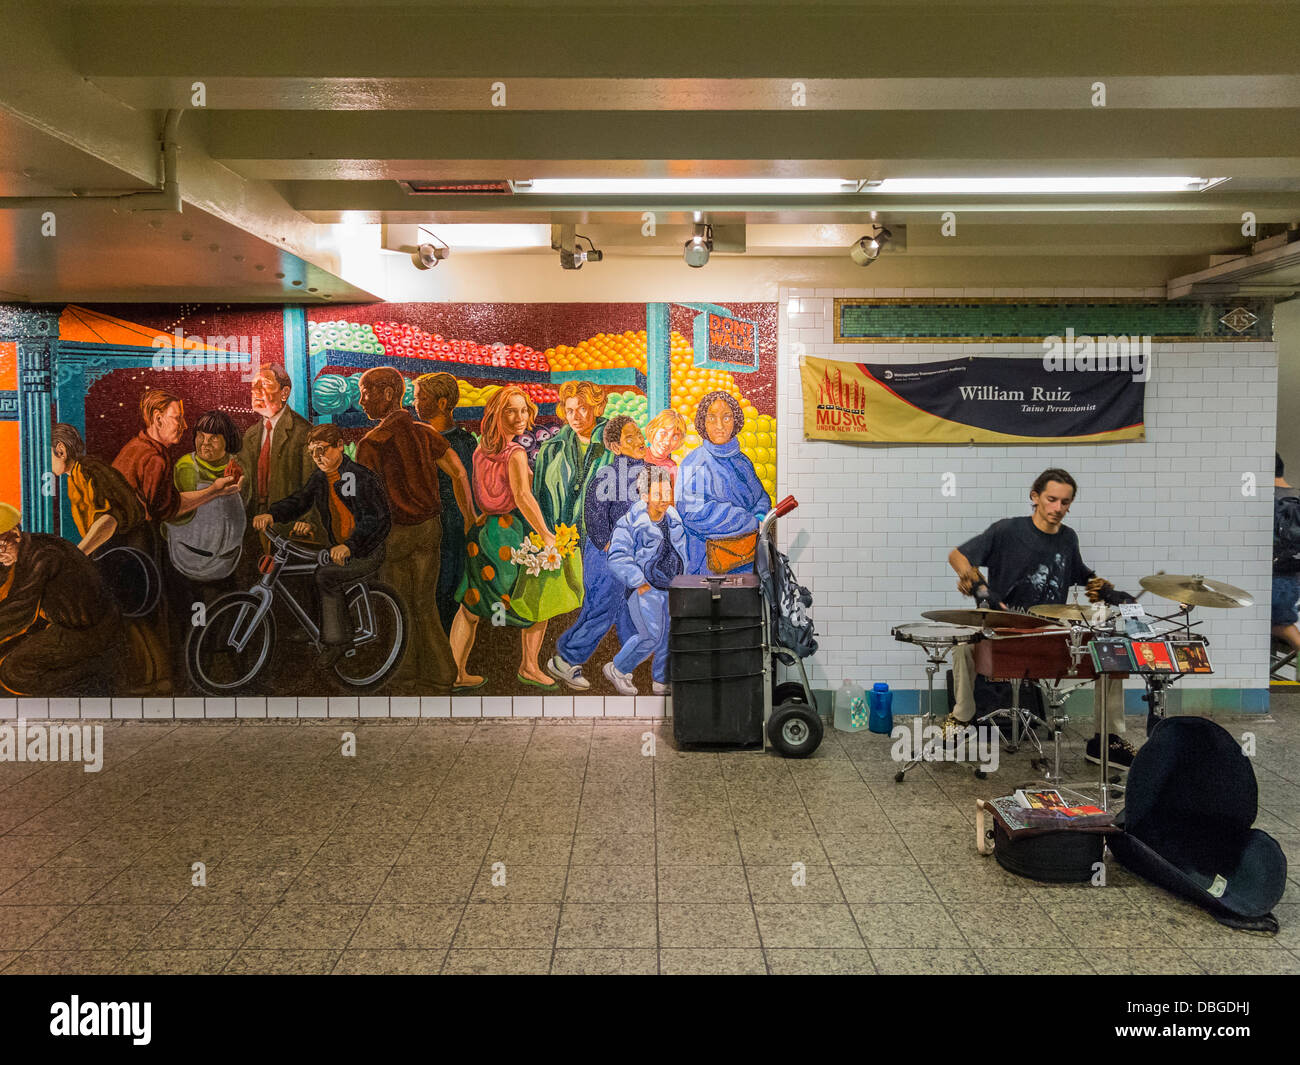 Busker street performer in the New York Subway next to a large mosiac - Stock Image